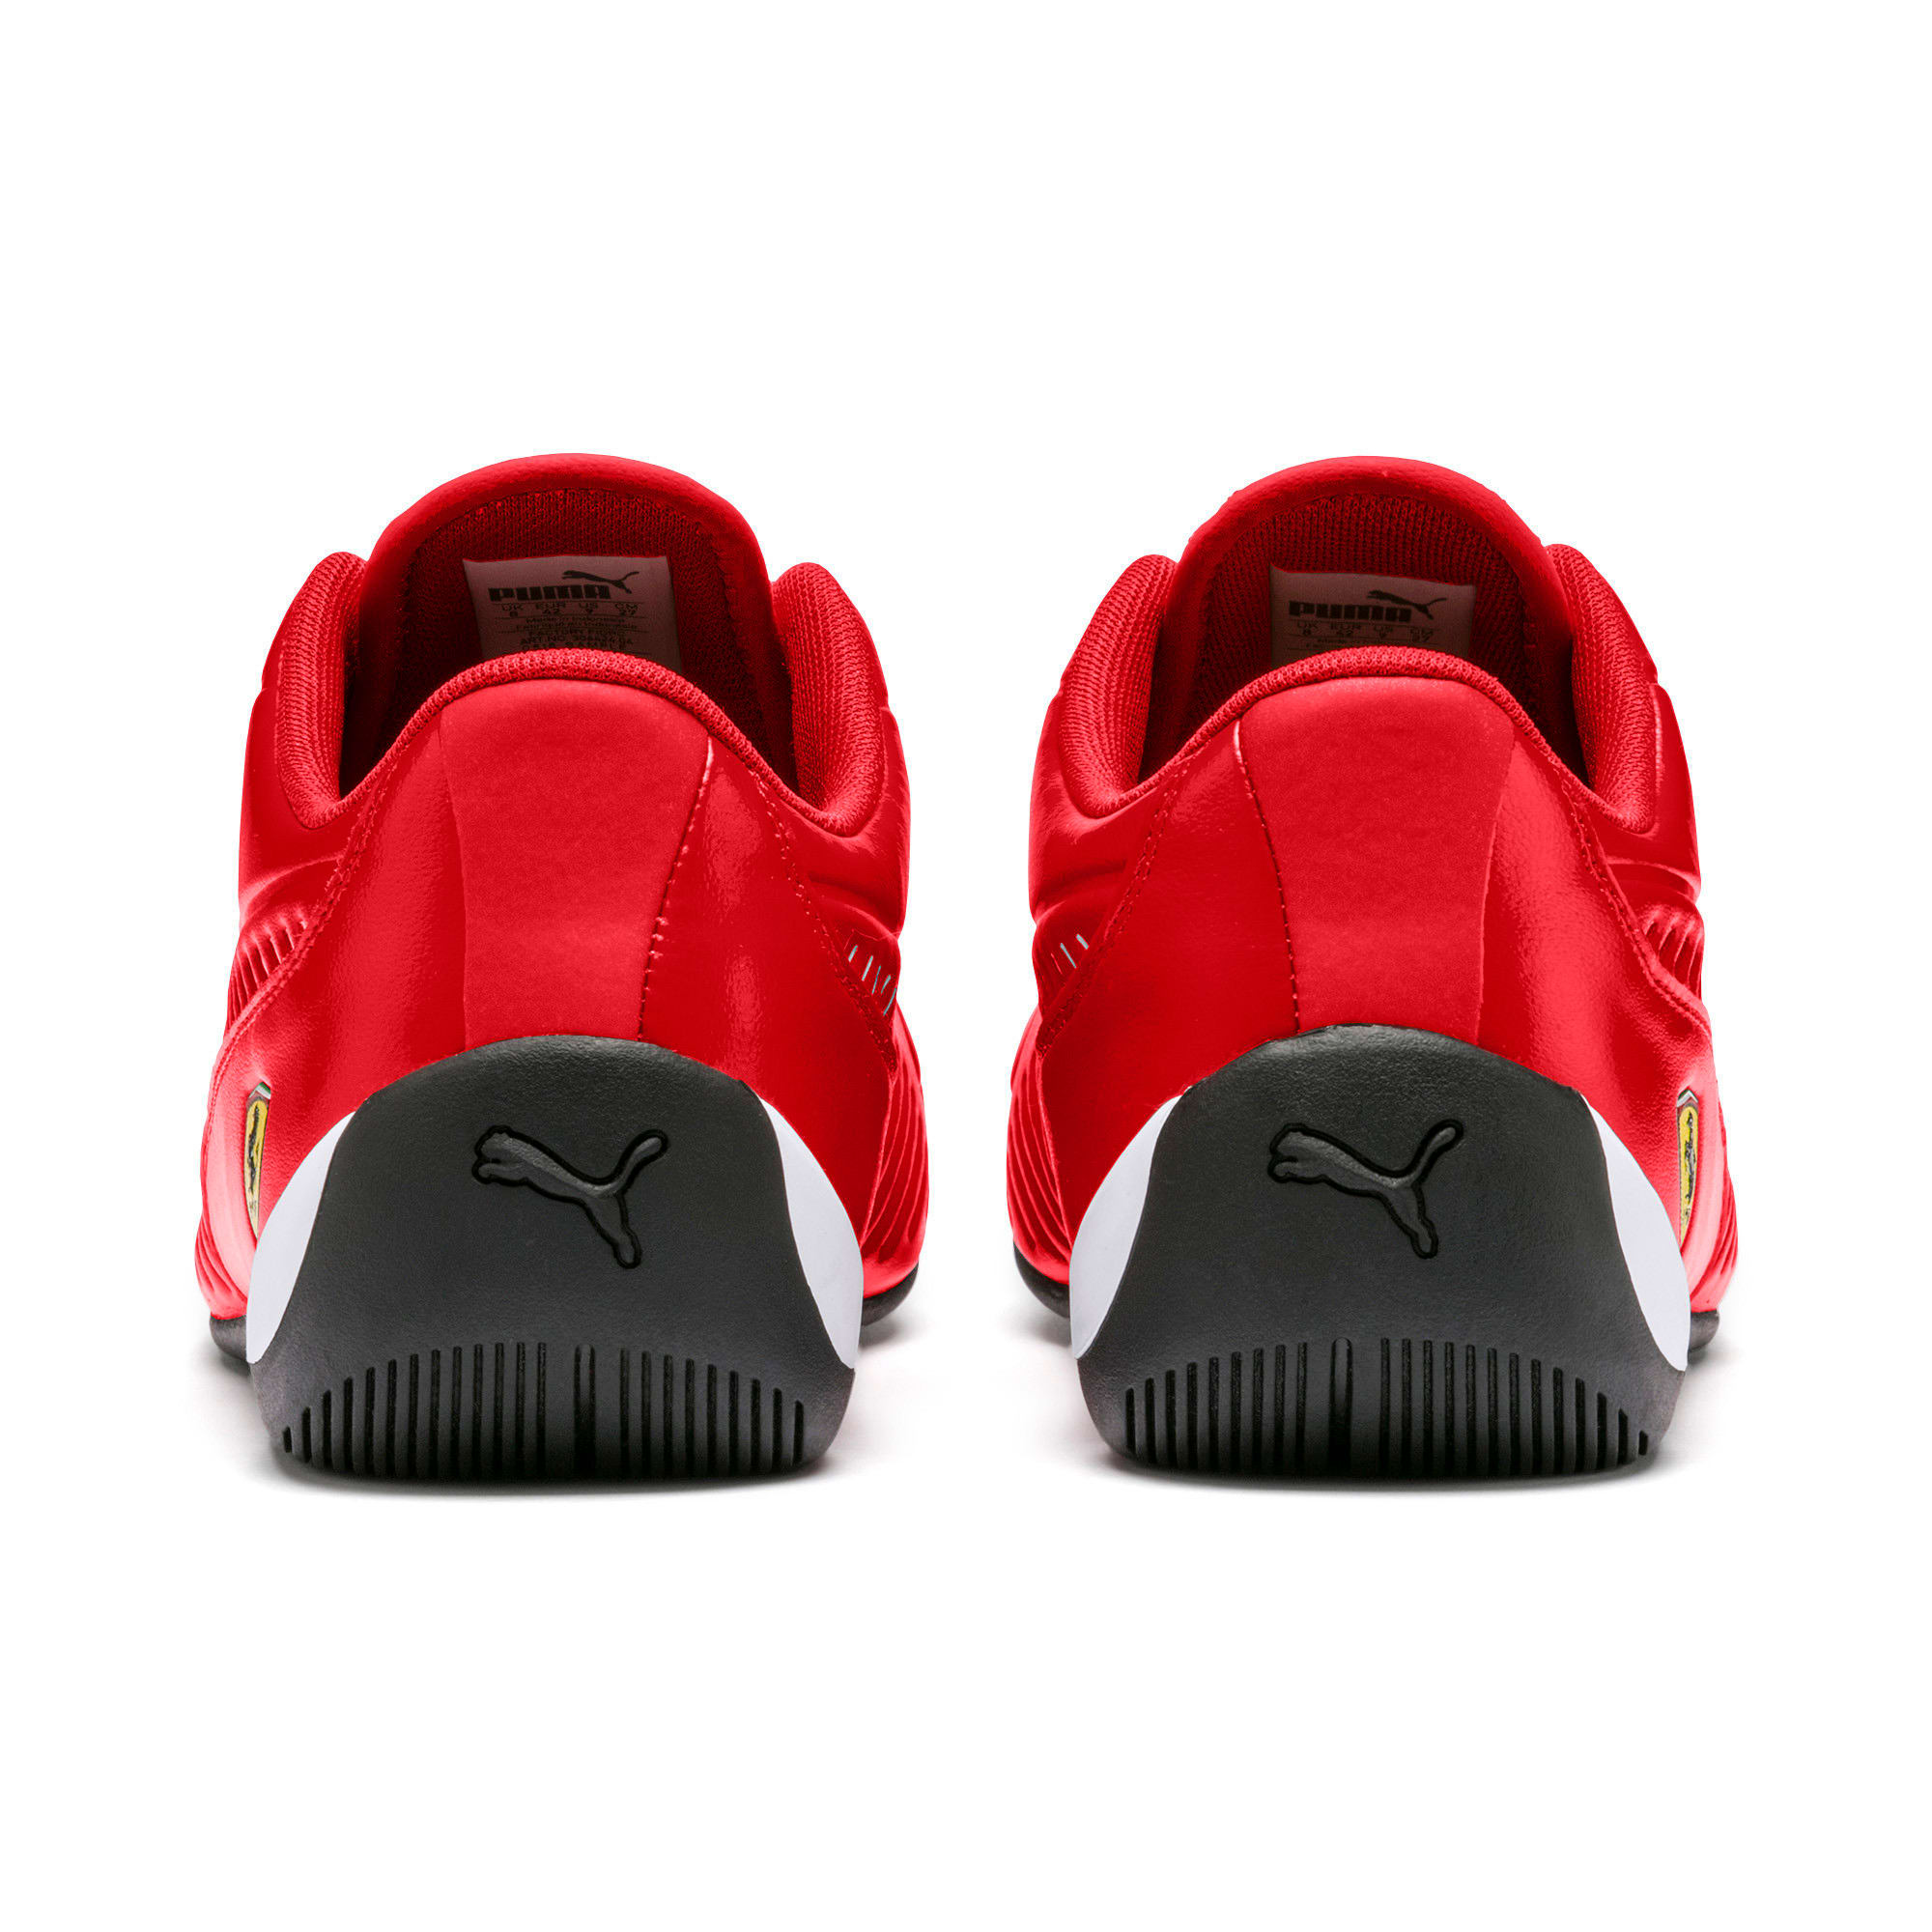 Thumbnail 3 of Scuderia Ferrari Drift Cat 7S Ultra Men's Shoes, Rosso Corsa-Puma White, medium